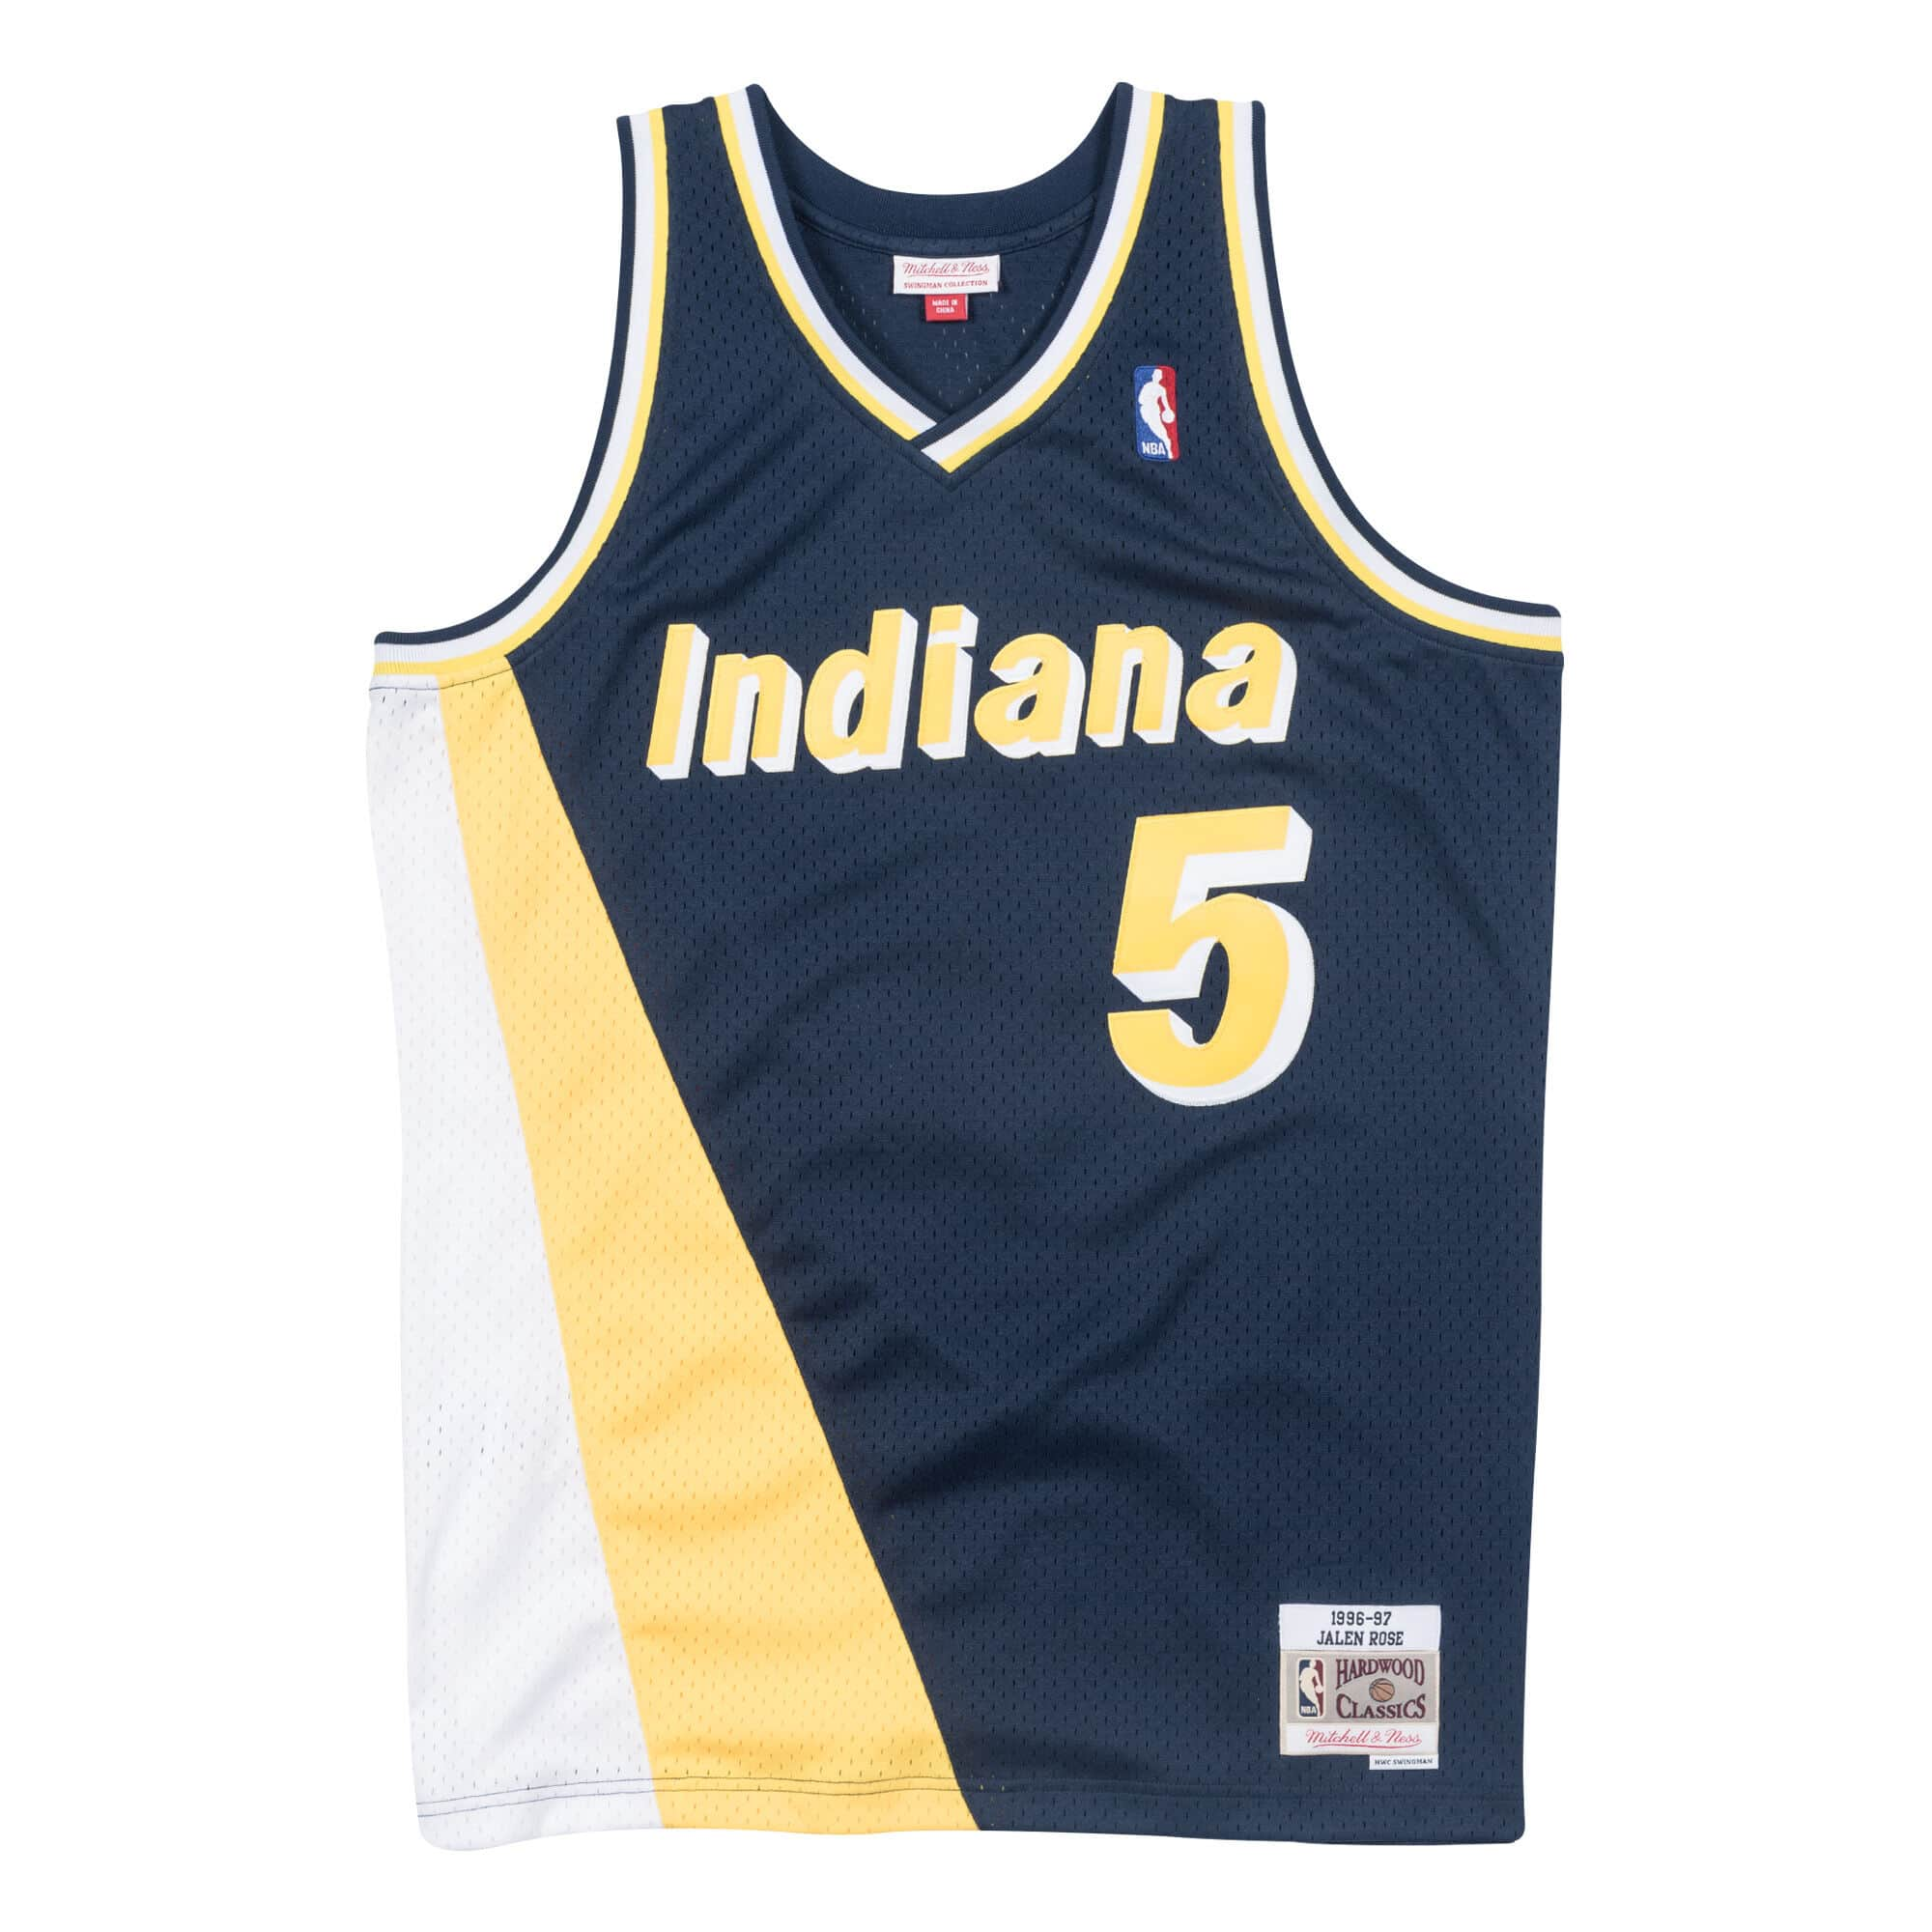 Jalen Rose 1996-97 Indiana Pacers Road Swingman Jersey